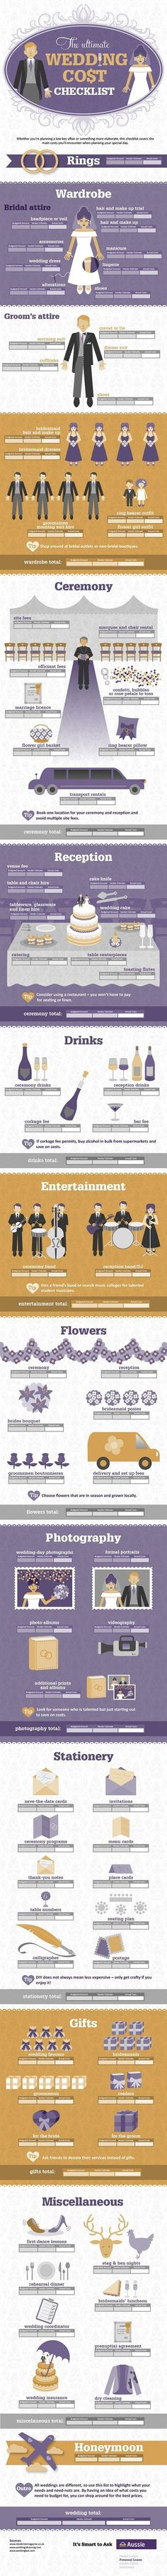 The Ultimate Wedding Cost Checklist Infographic